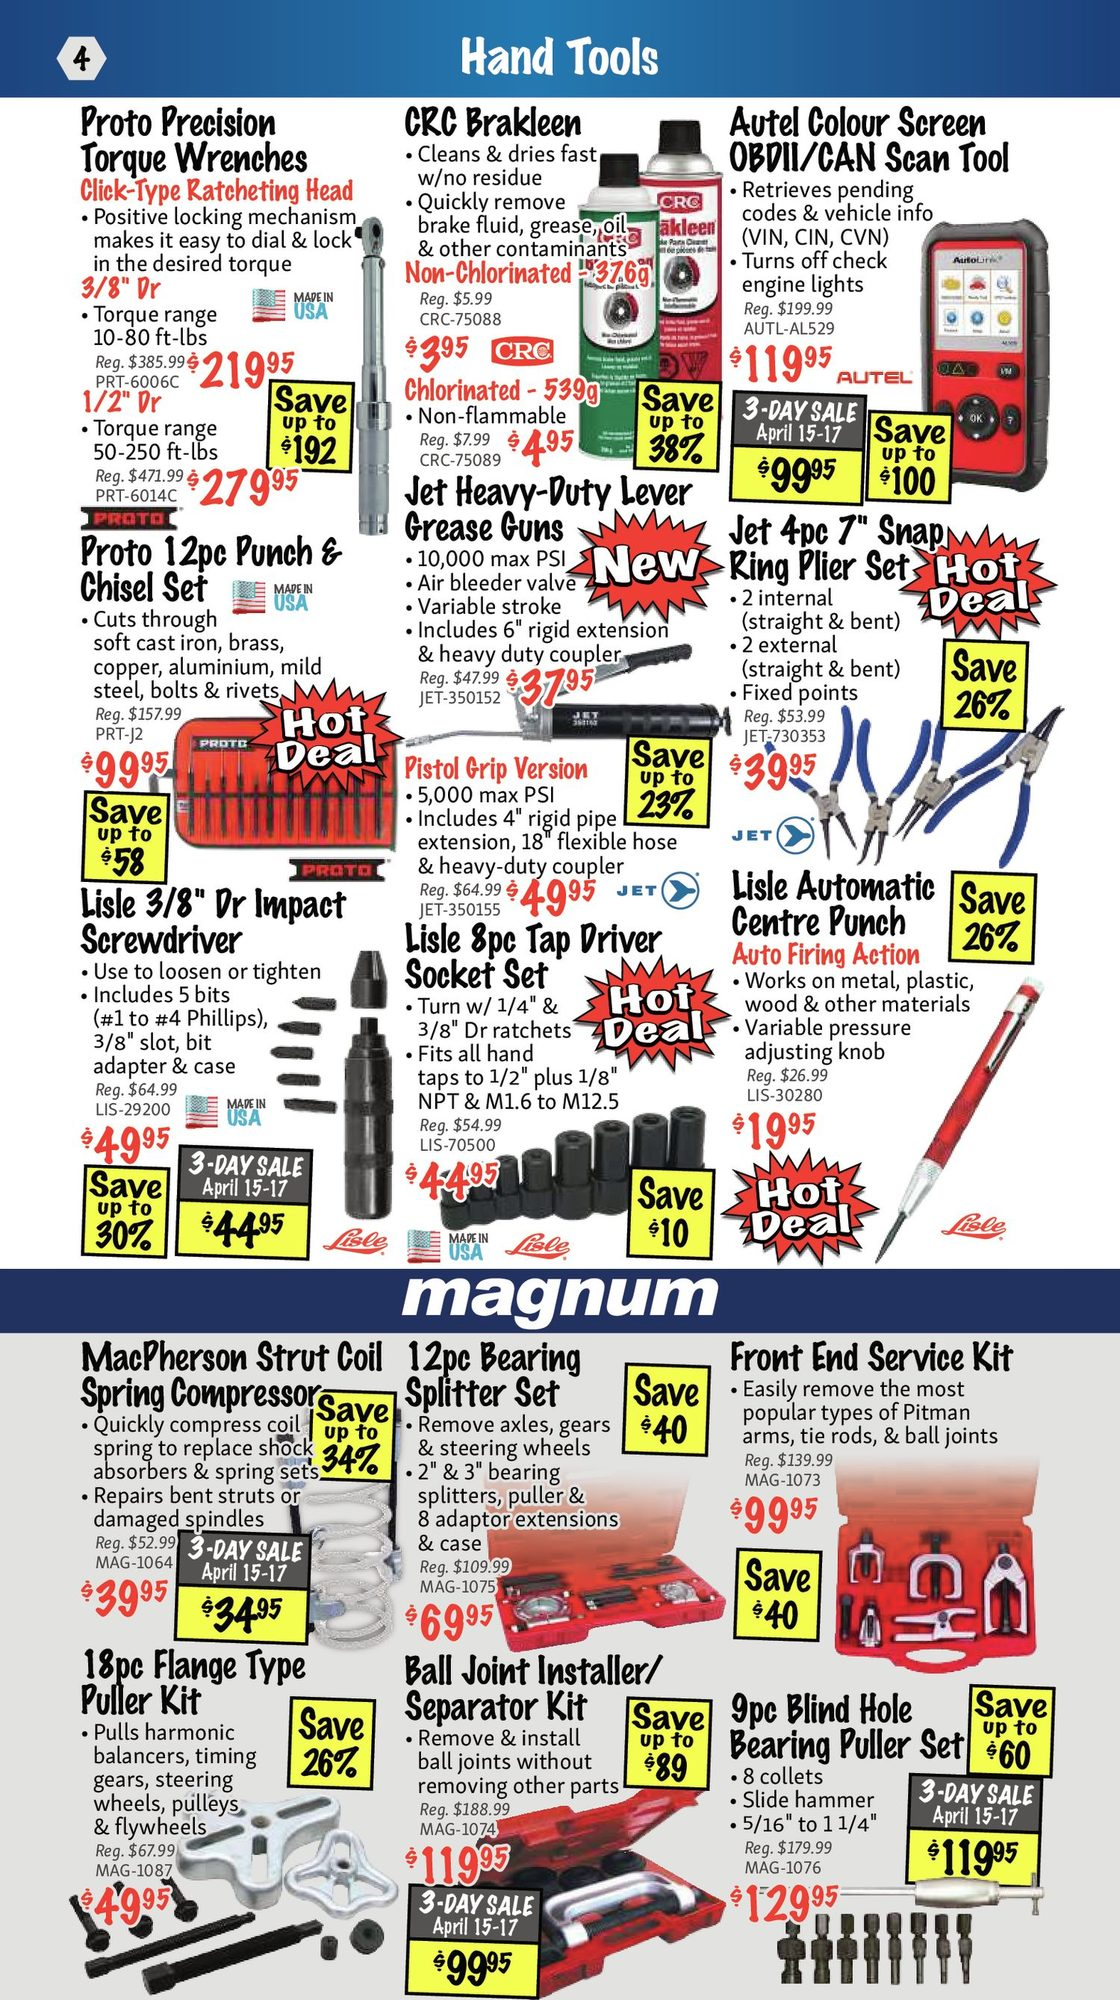 KMS Tools - Hand Tools, Air Tools & Compressor Sale - Page 4